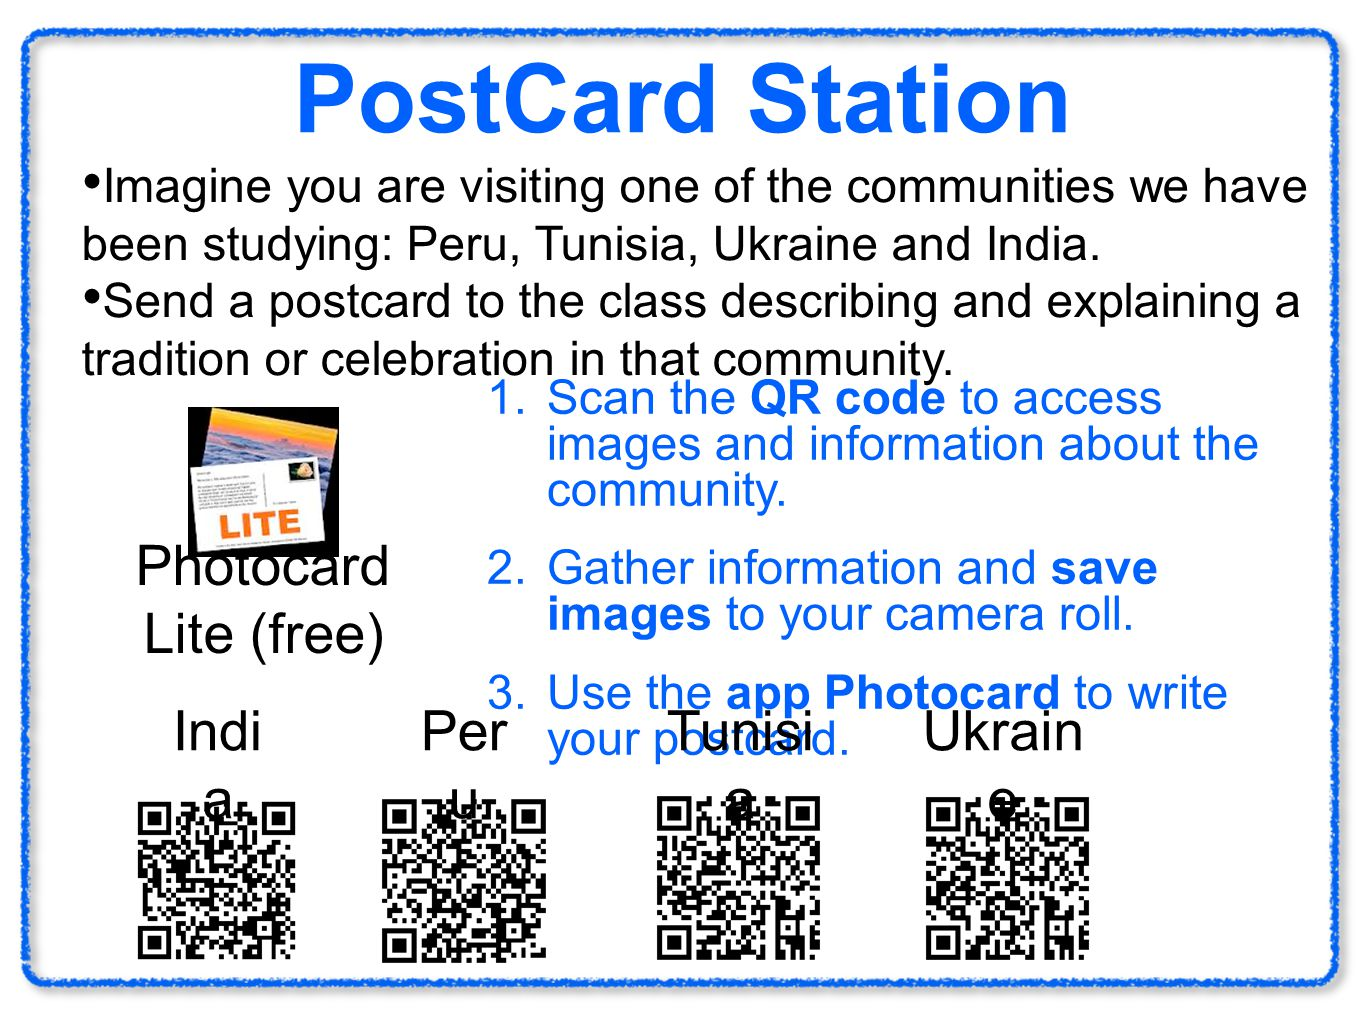 PostCard Station Imagine you are visiting one of the communities we have been studying: Peru, Tunisia, Ukraine and India. Send a postcard to the class